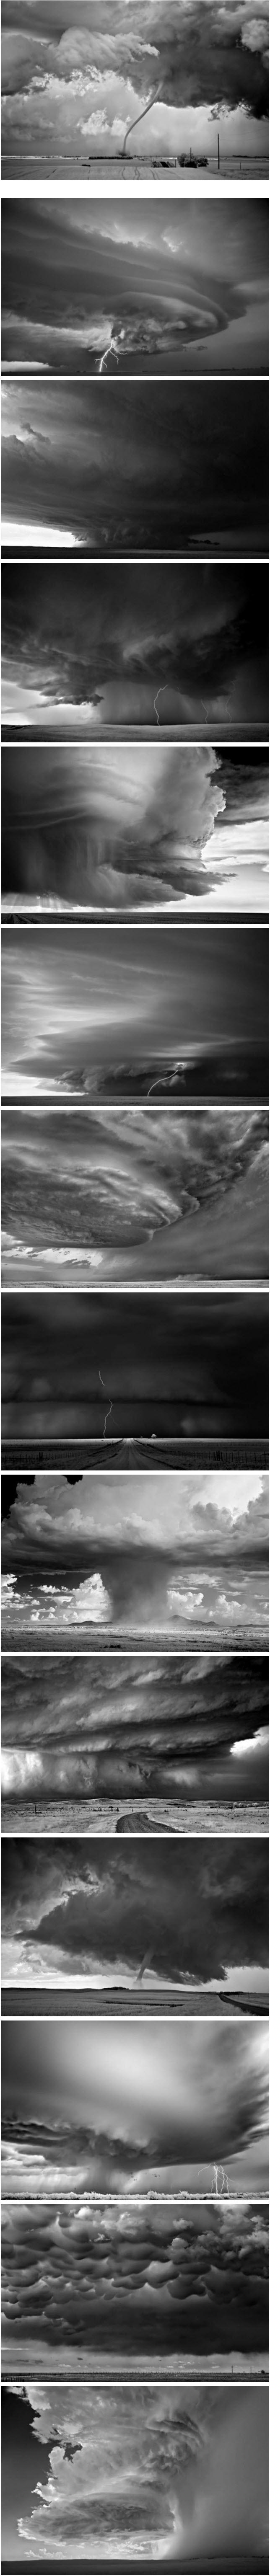 Heavy storms by Mitch Dobrowner